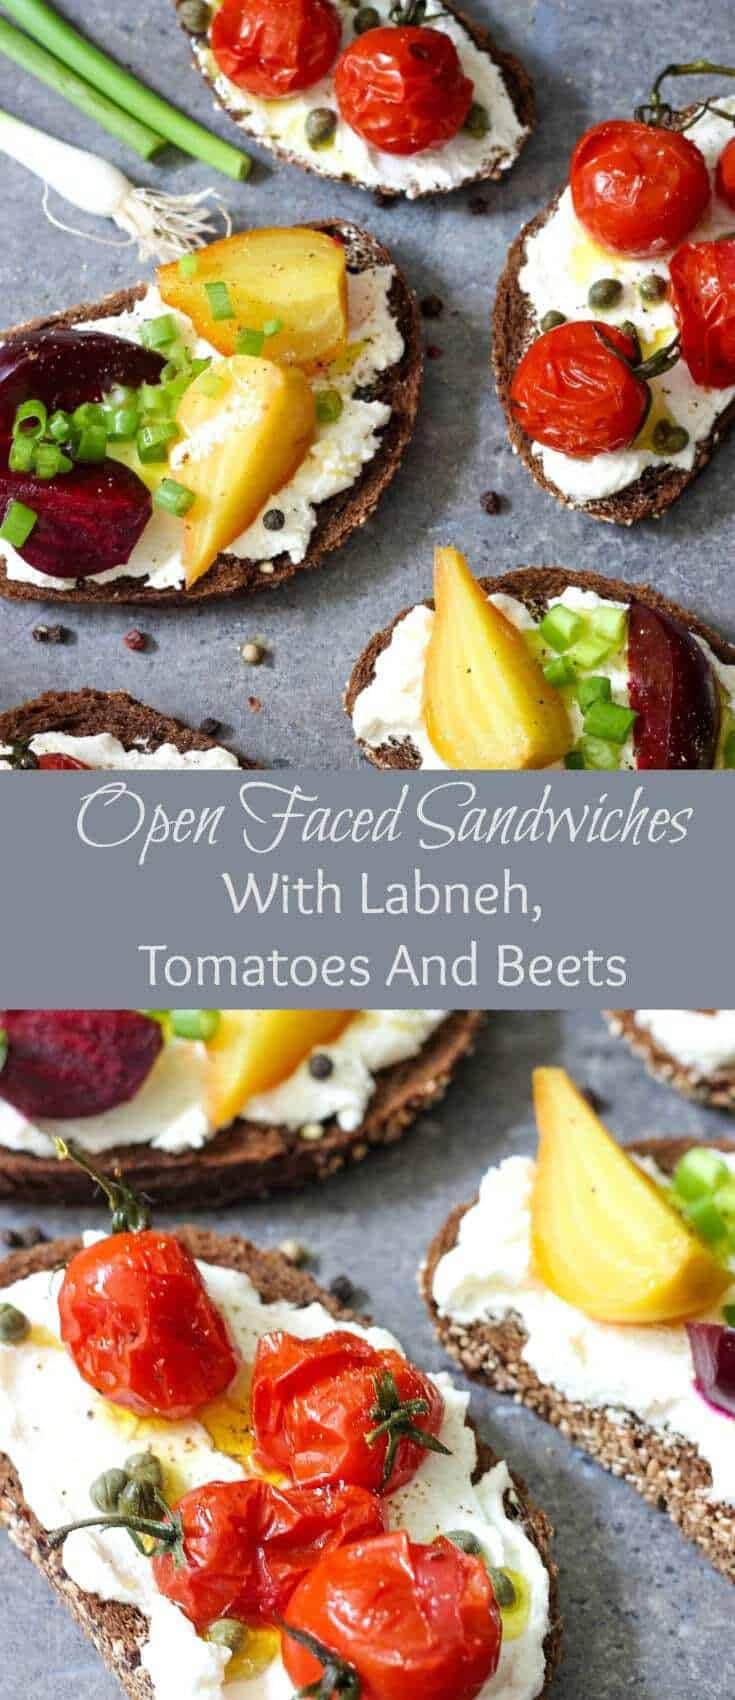 open-faced-sandwiches-with-labneh-tomatoes-and-beets